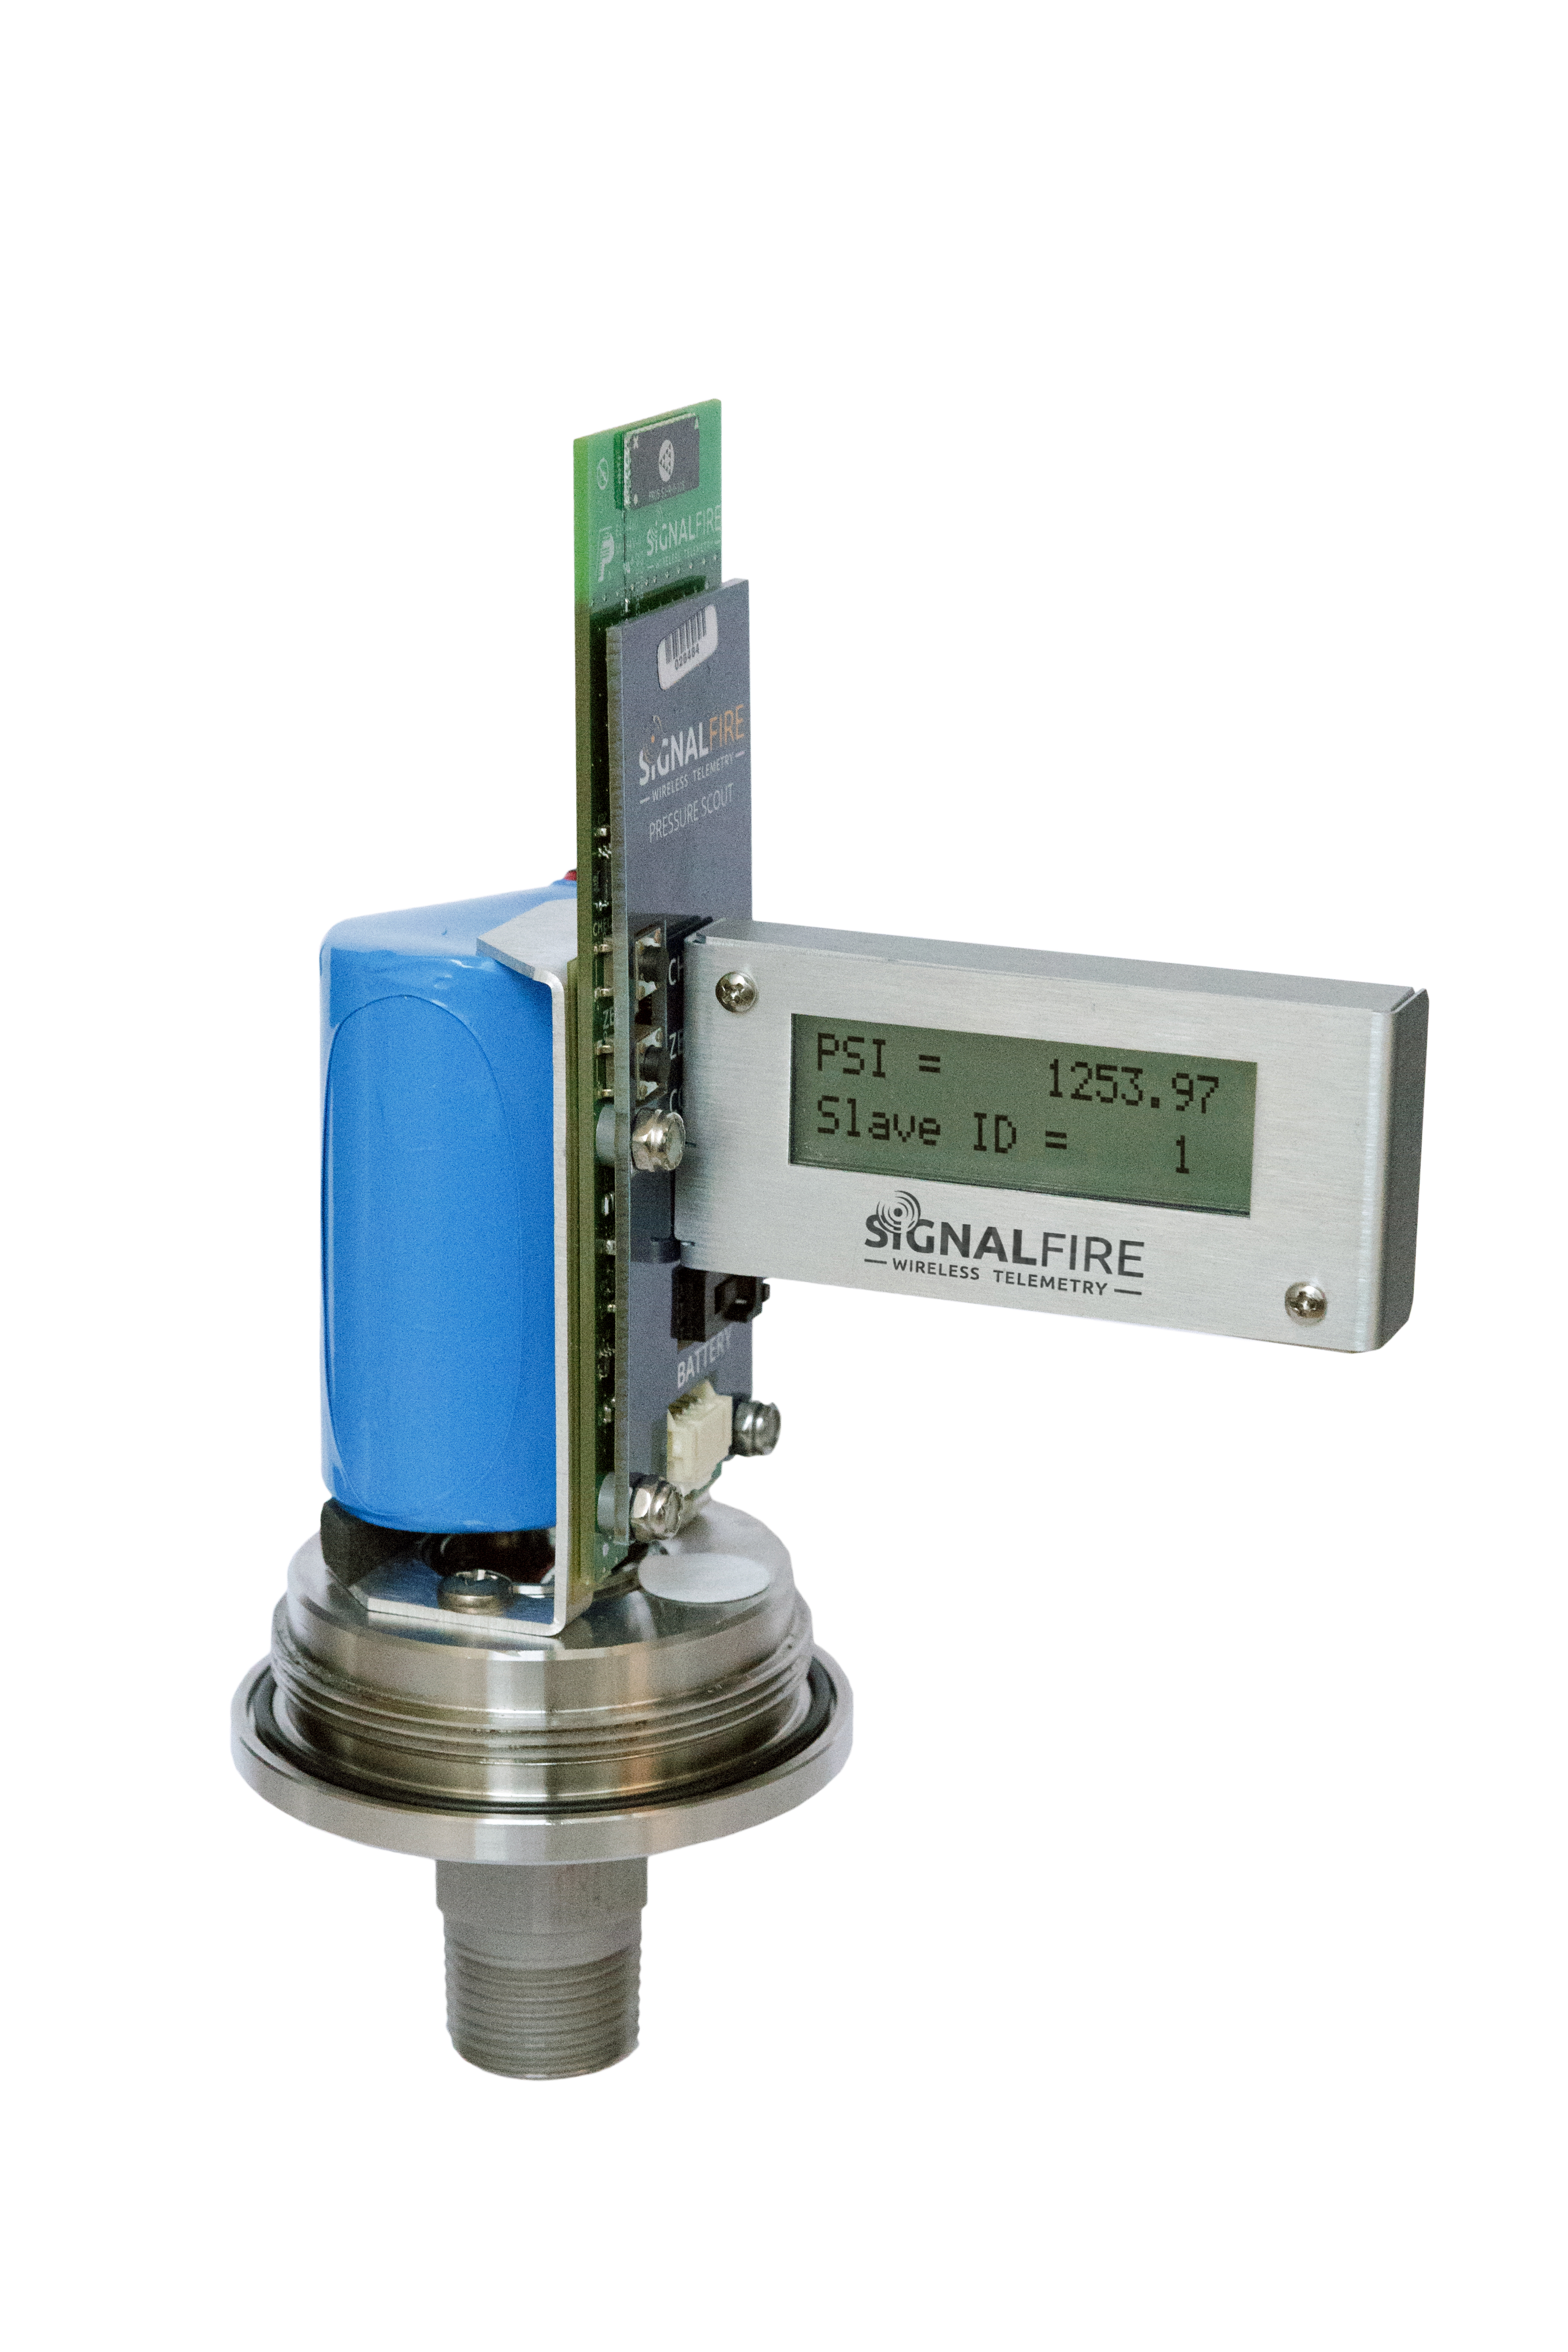 Optional field calibration display